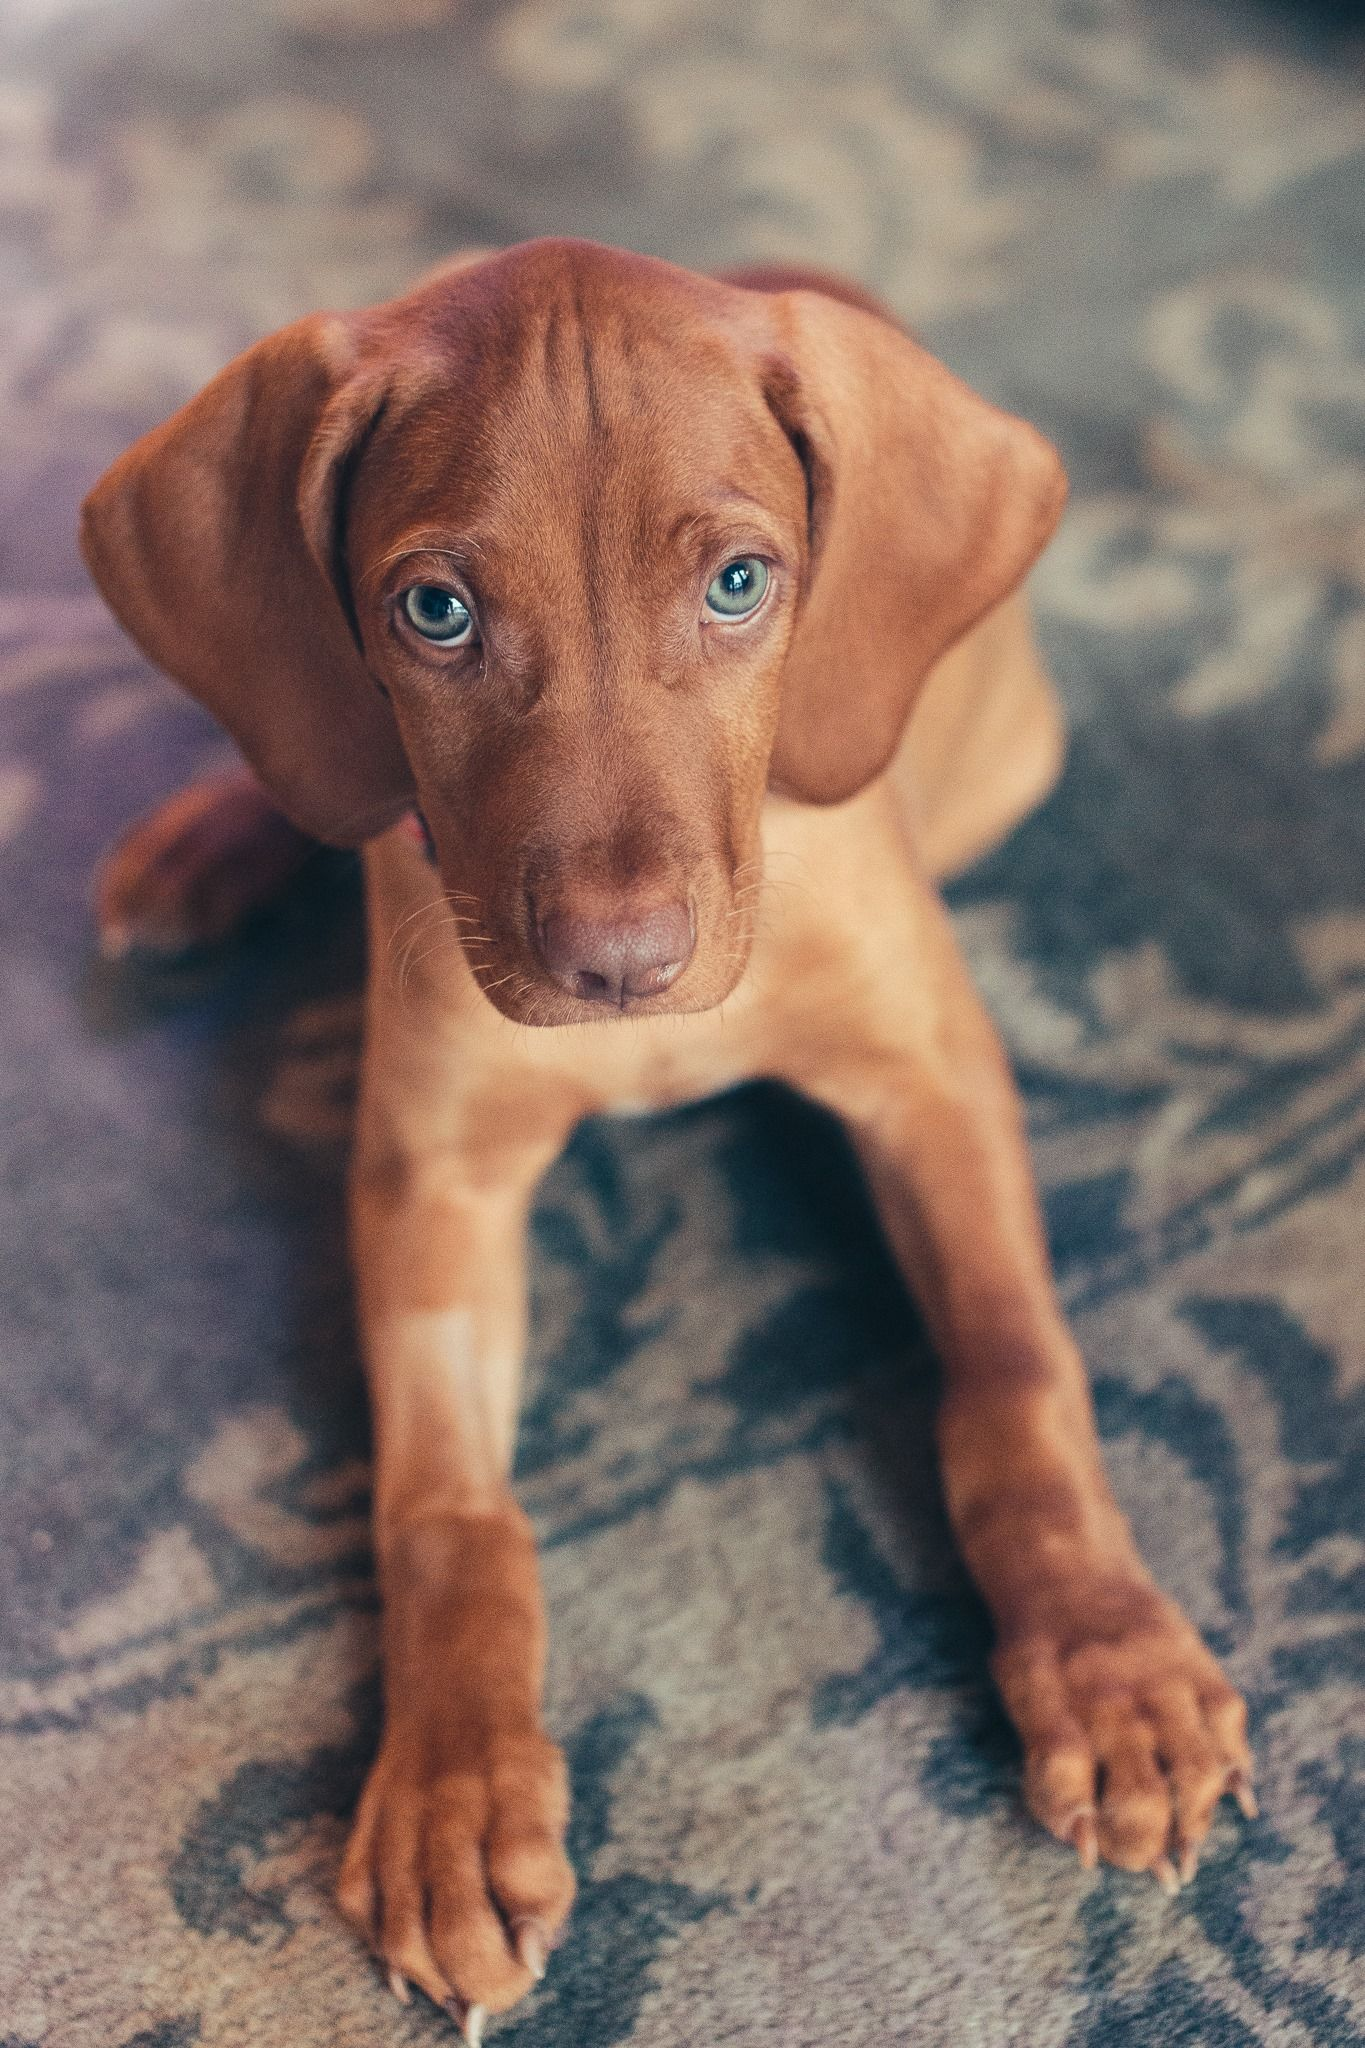 Laszlo Celebrates His 1 Week New Home Anniversary R Aww Vizsla Puppies Vizsla Dogs Dogs